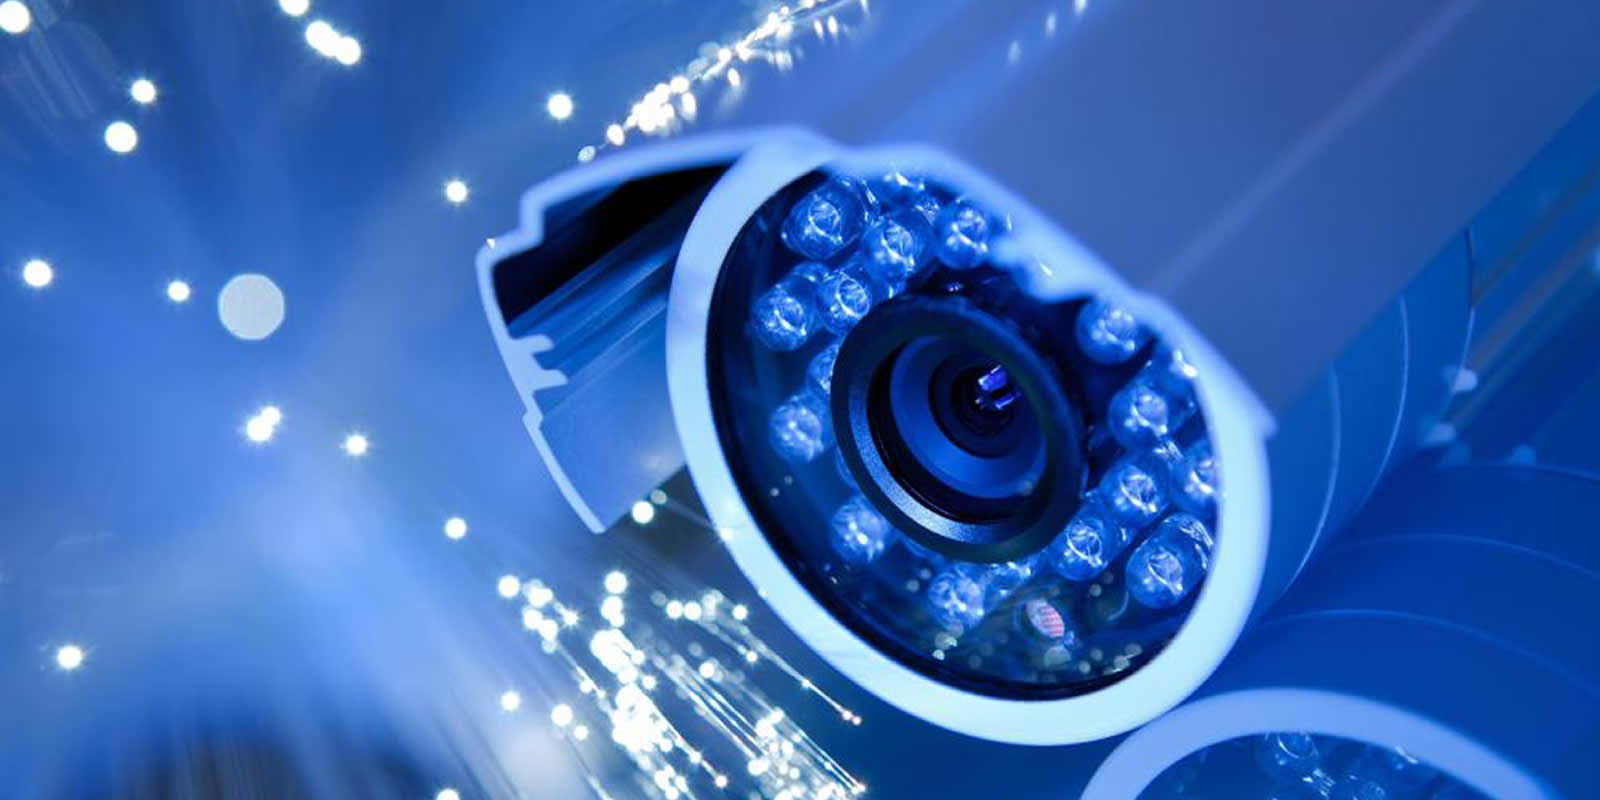 Amekom Systems your partner in CCTV Security Systems